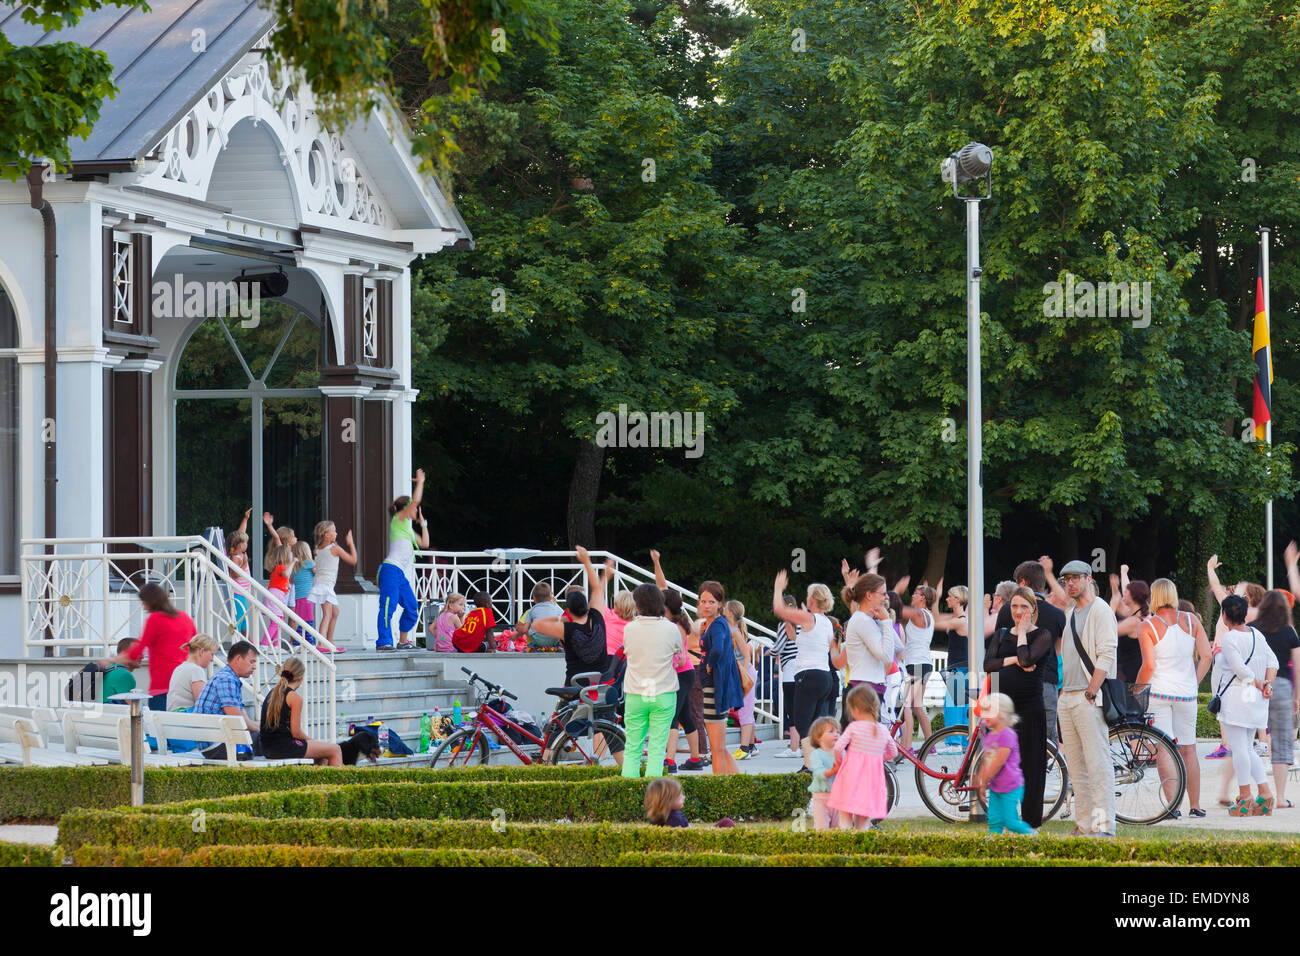 Health spa park / kurgarten / kurpark at seaside resort Boltenhagen, Mecklenburg-Vorpommern, Germany - Stock Image